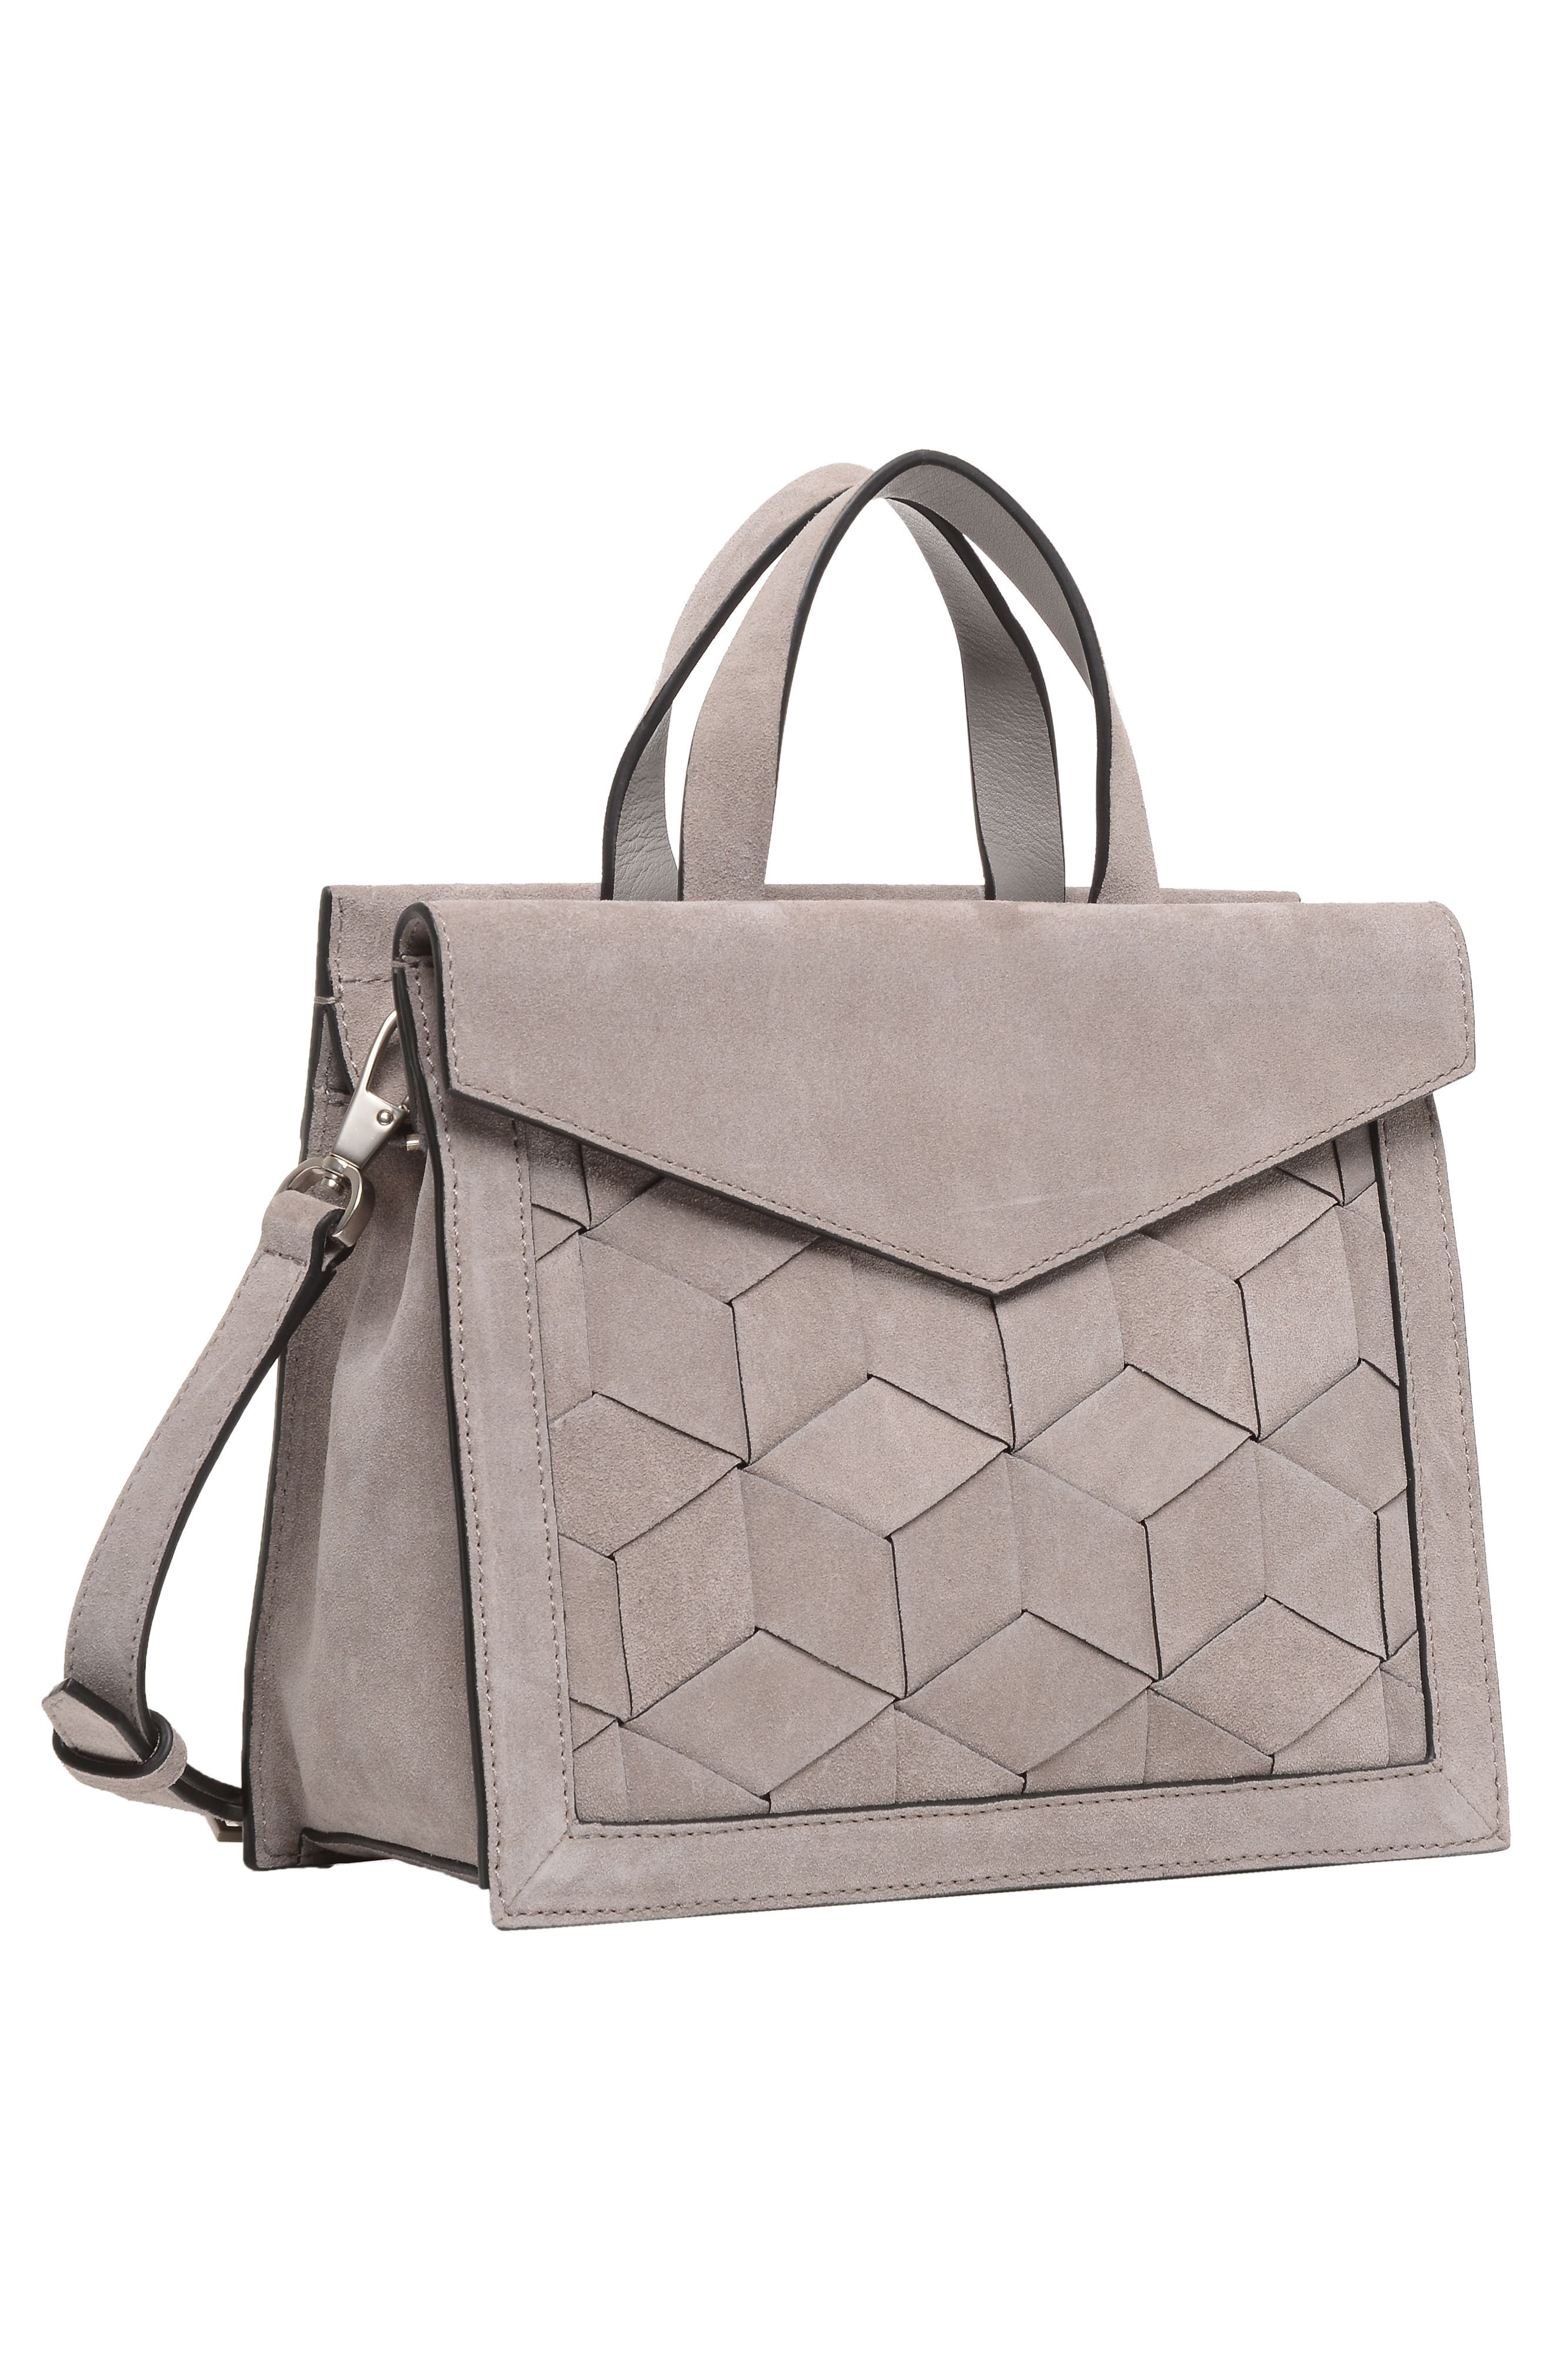 Small Voyager Leather Convertible Satchel,                             Alternate thumbnail 4, color,                             020